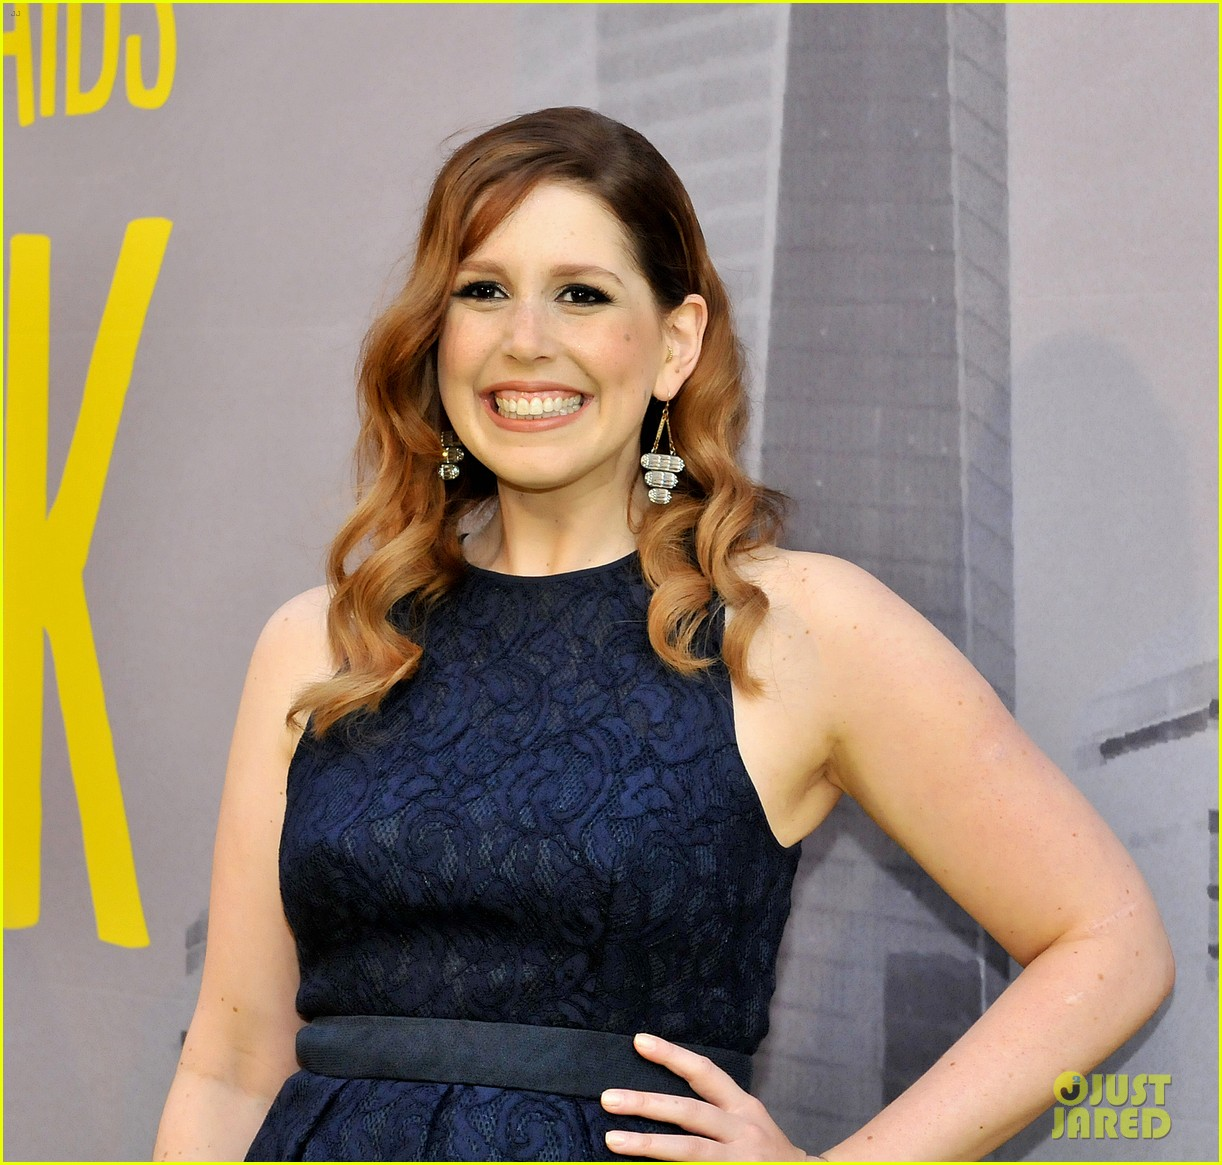 vanessa bayer brothervanessa bayer miley cyrus, vanessa bayer does miley cyrus, vanessa bayer jennifer aniston, vanessa bayer wiki, vanessa bayer beck bennett, vanessa bayer adam and eve commercial, vanessa bayer kristen stewart snl, vanessa bayer snl miley cyrus, vanessa bayer friends, vanessa bayer age, vanessa bayer filmography, vanessa bayer russell brand, vanessa bayer stand up, vanessa bayer instagram, vanessa bayer twitter, vanessa bayer dating video, vanessa bayer brother